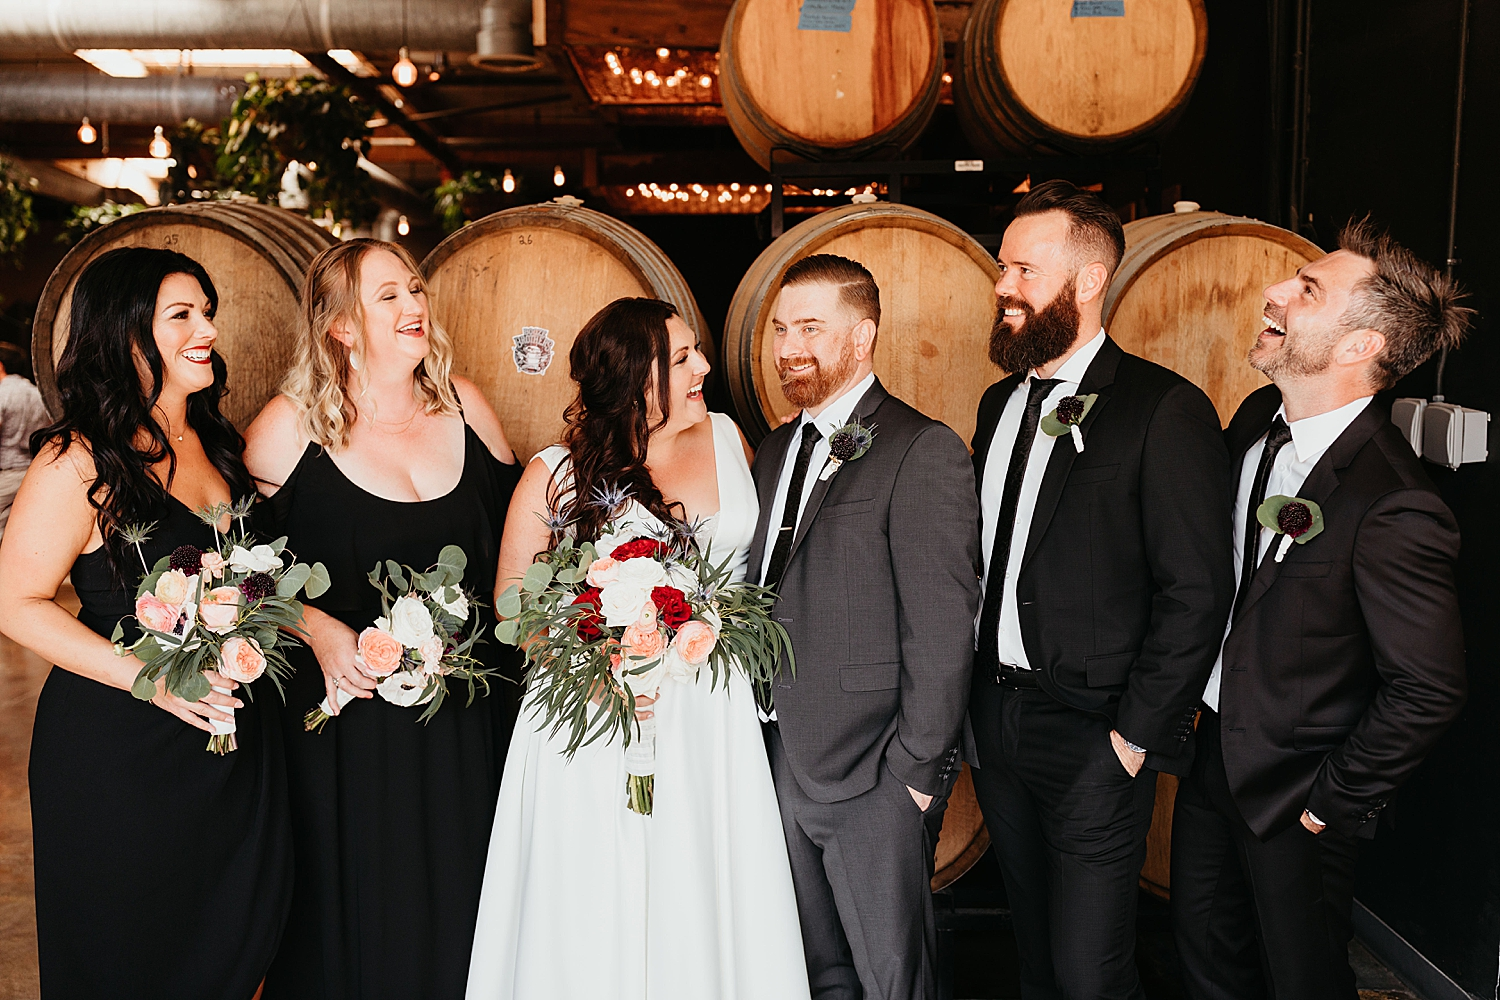 The-Wood-Shed-Booze-Brothers-Wedding-50.jpg